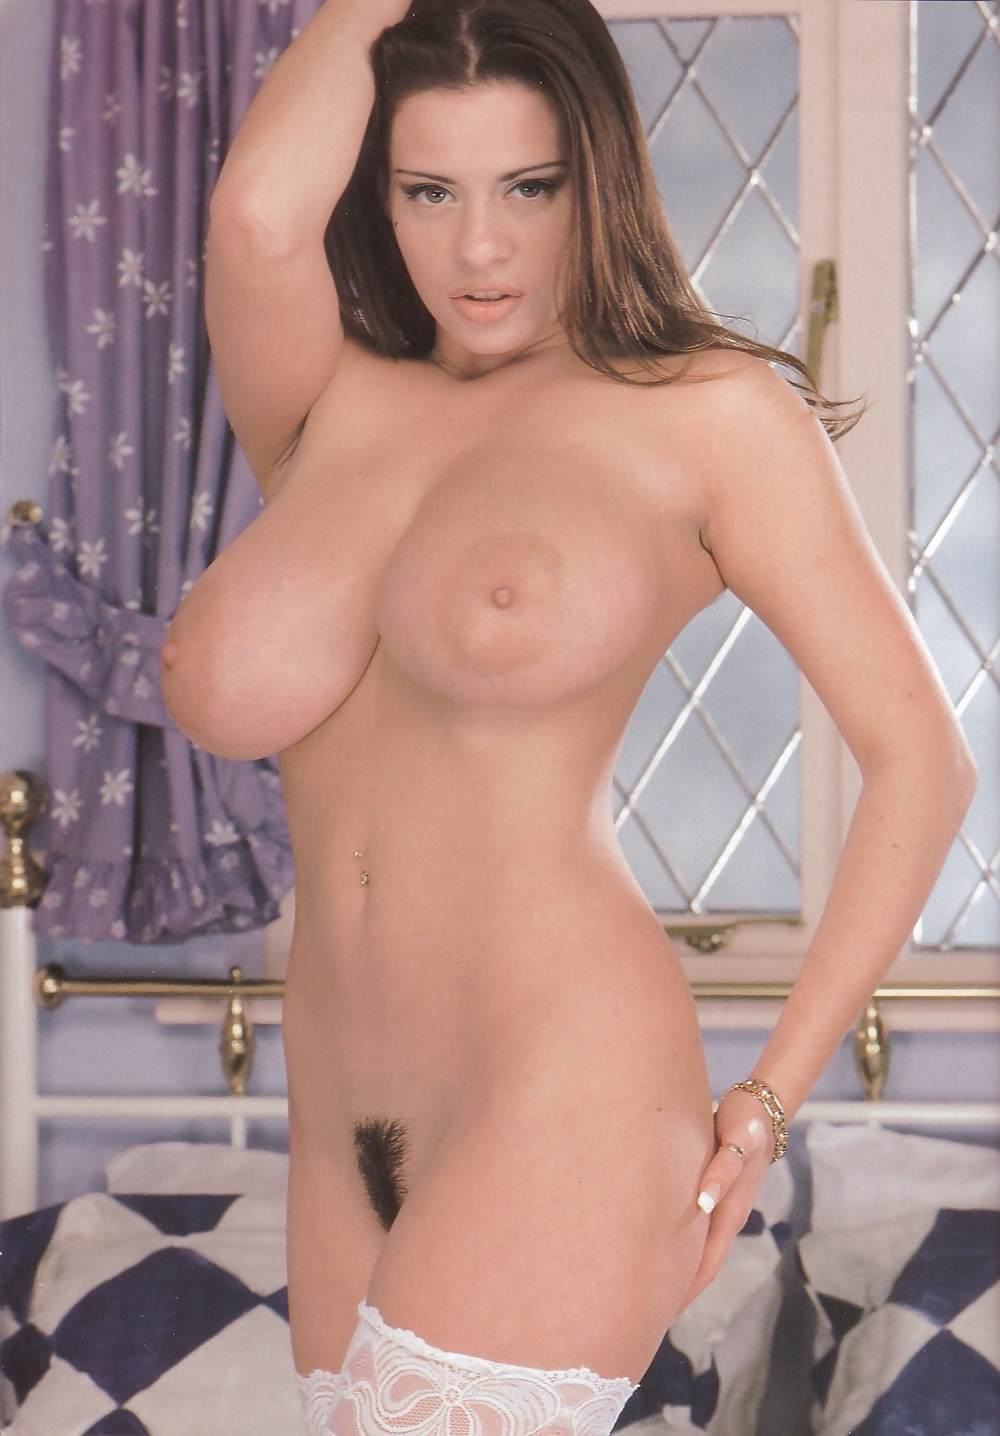 linsey dawn topless